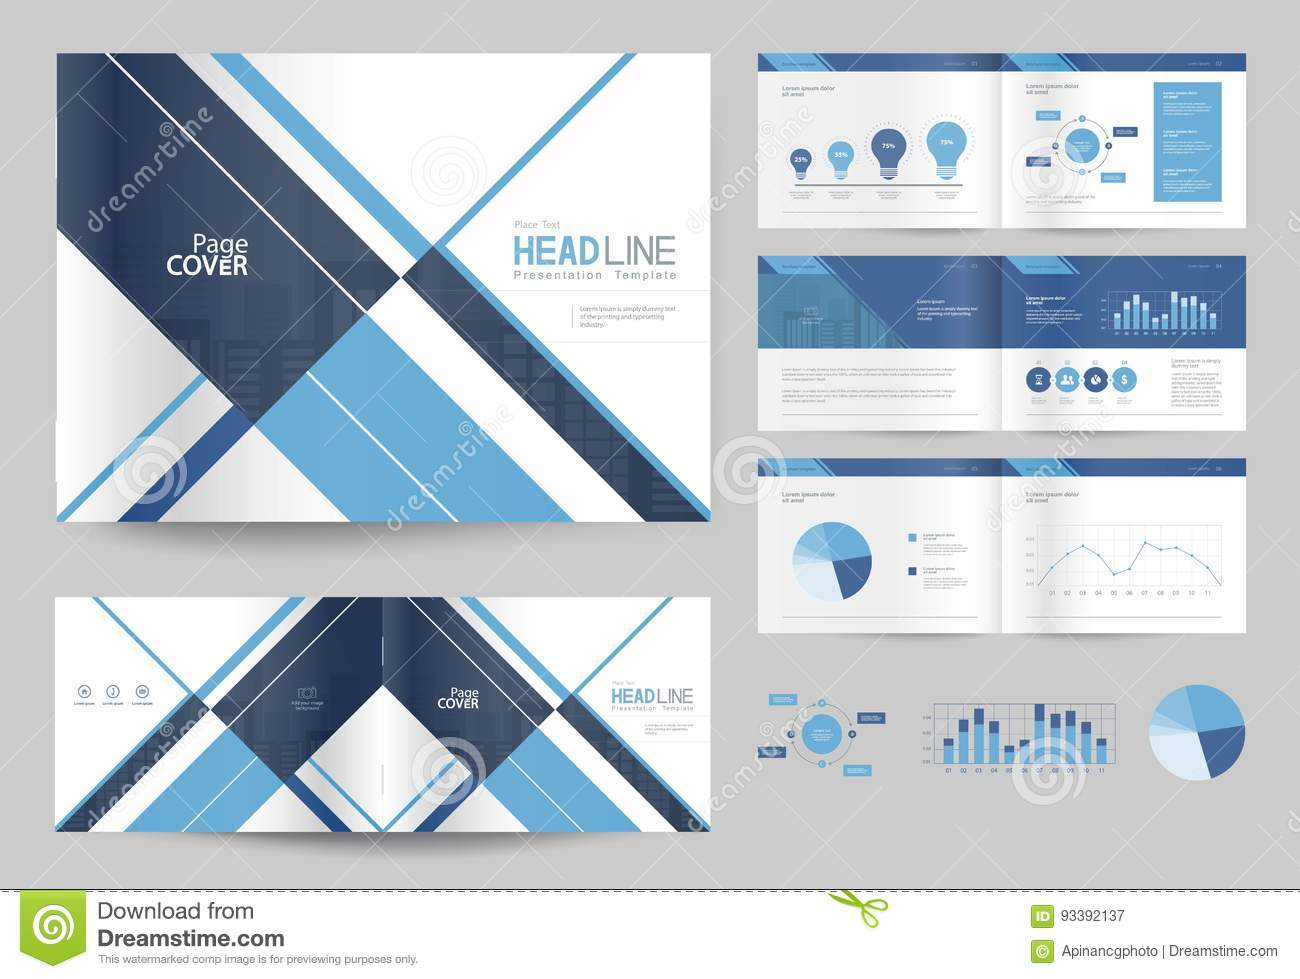 Business brochure design template and page layout for company business brochure design template and page layout for company profile maxwellsz